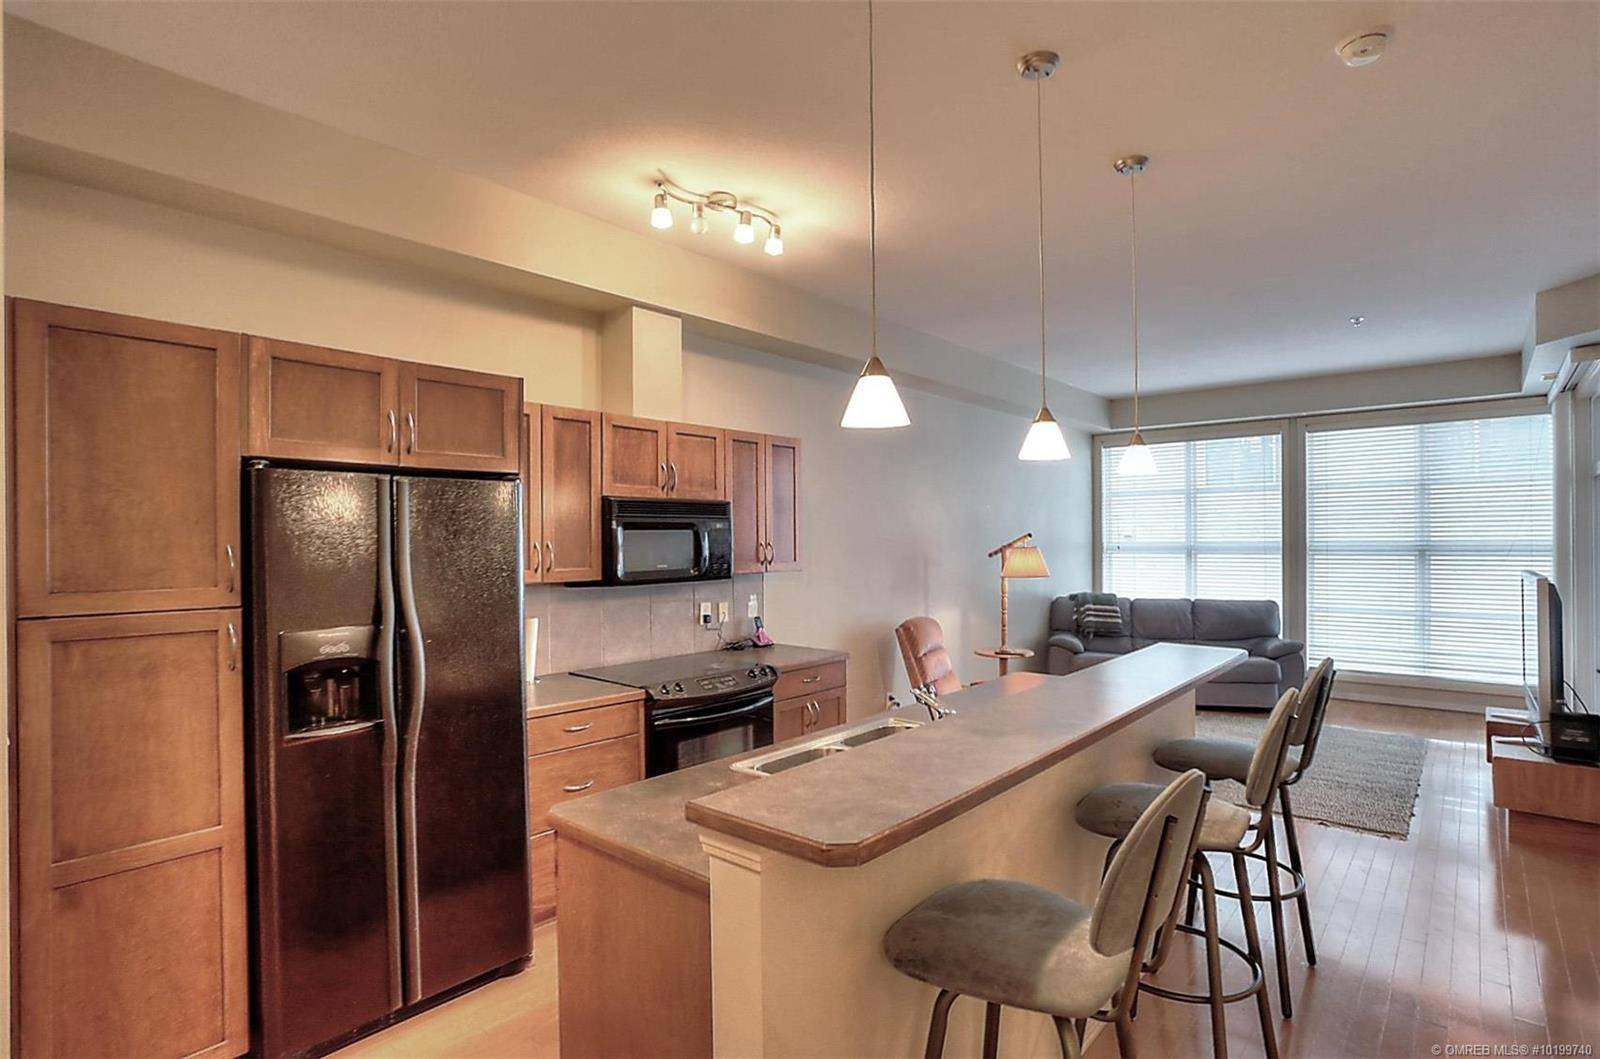 Condo for sale at 1331 Ellis St Unit 209 Kelowna British Columbia - MLS: 10199740